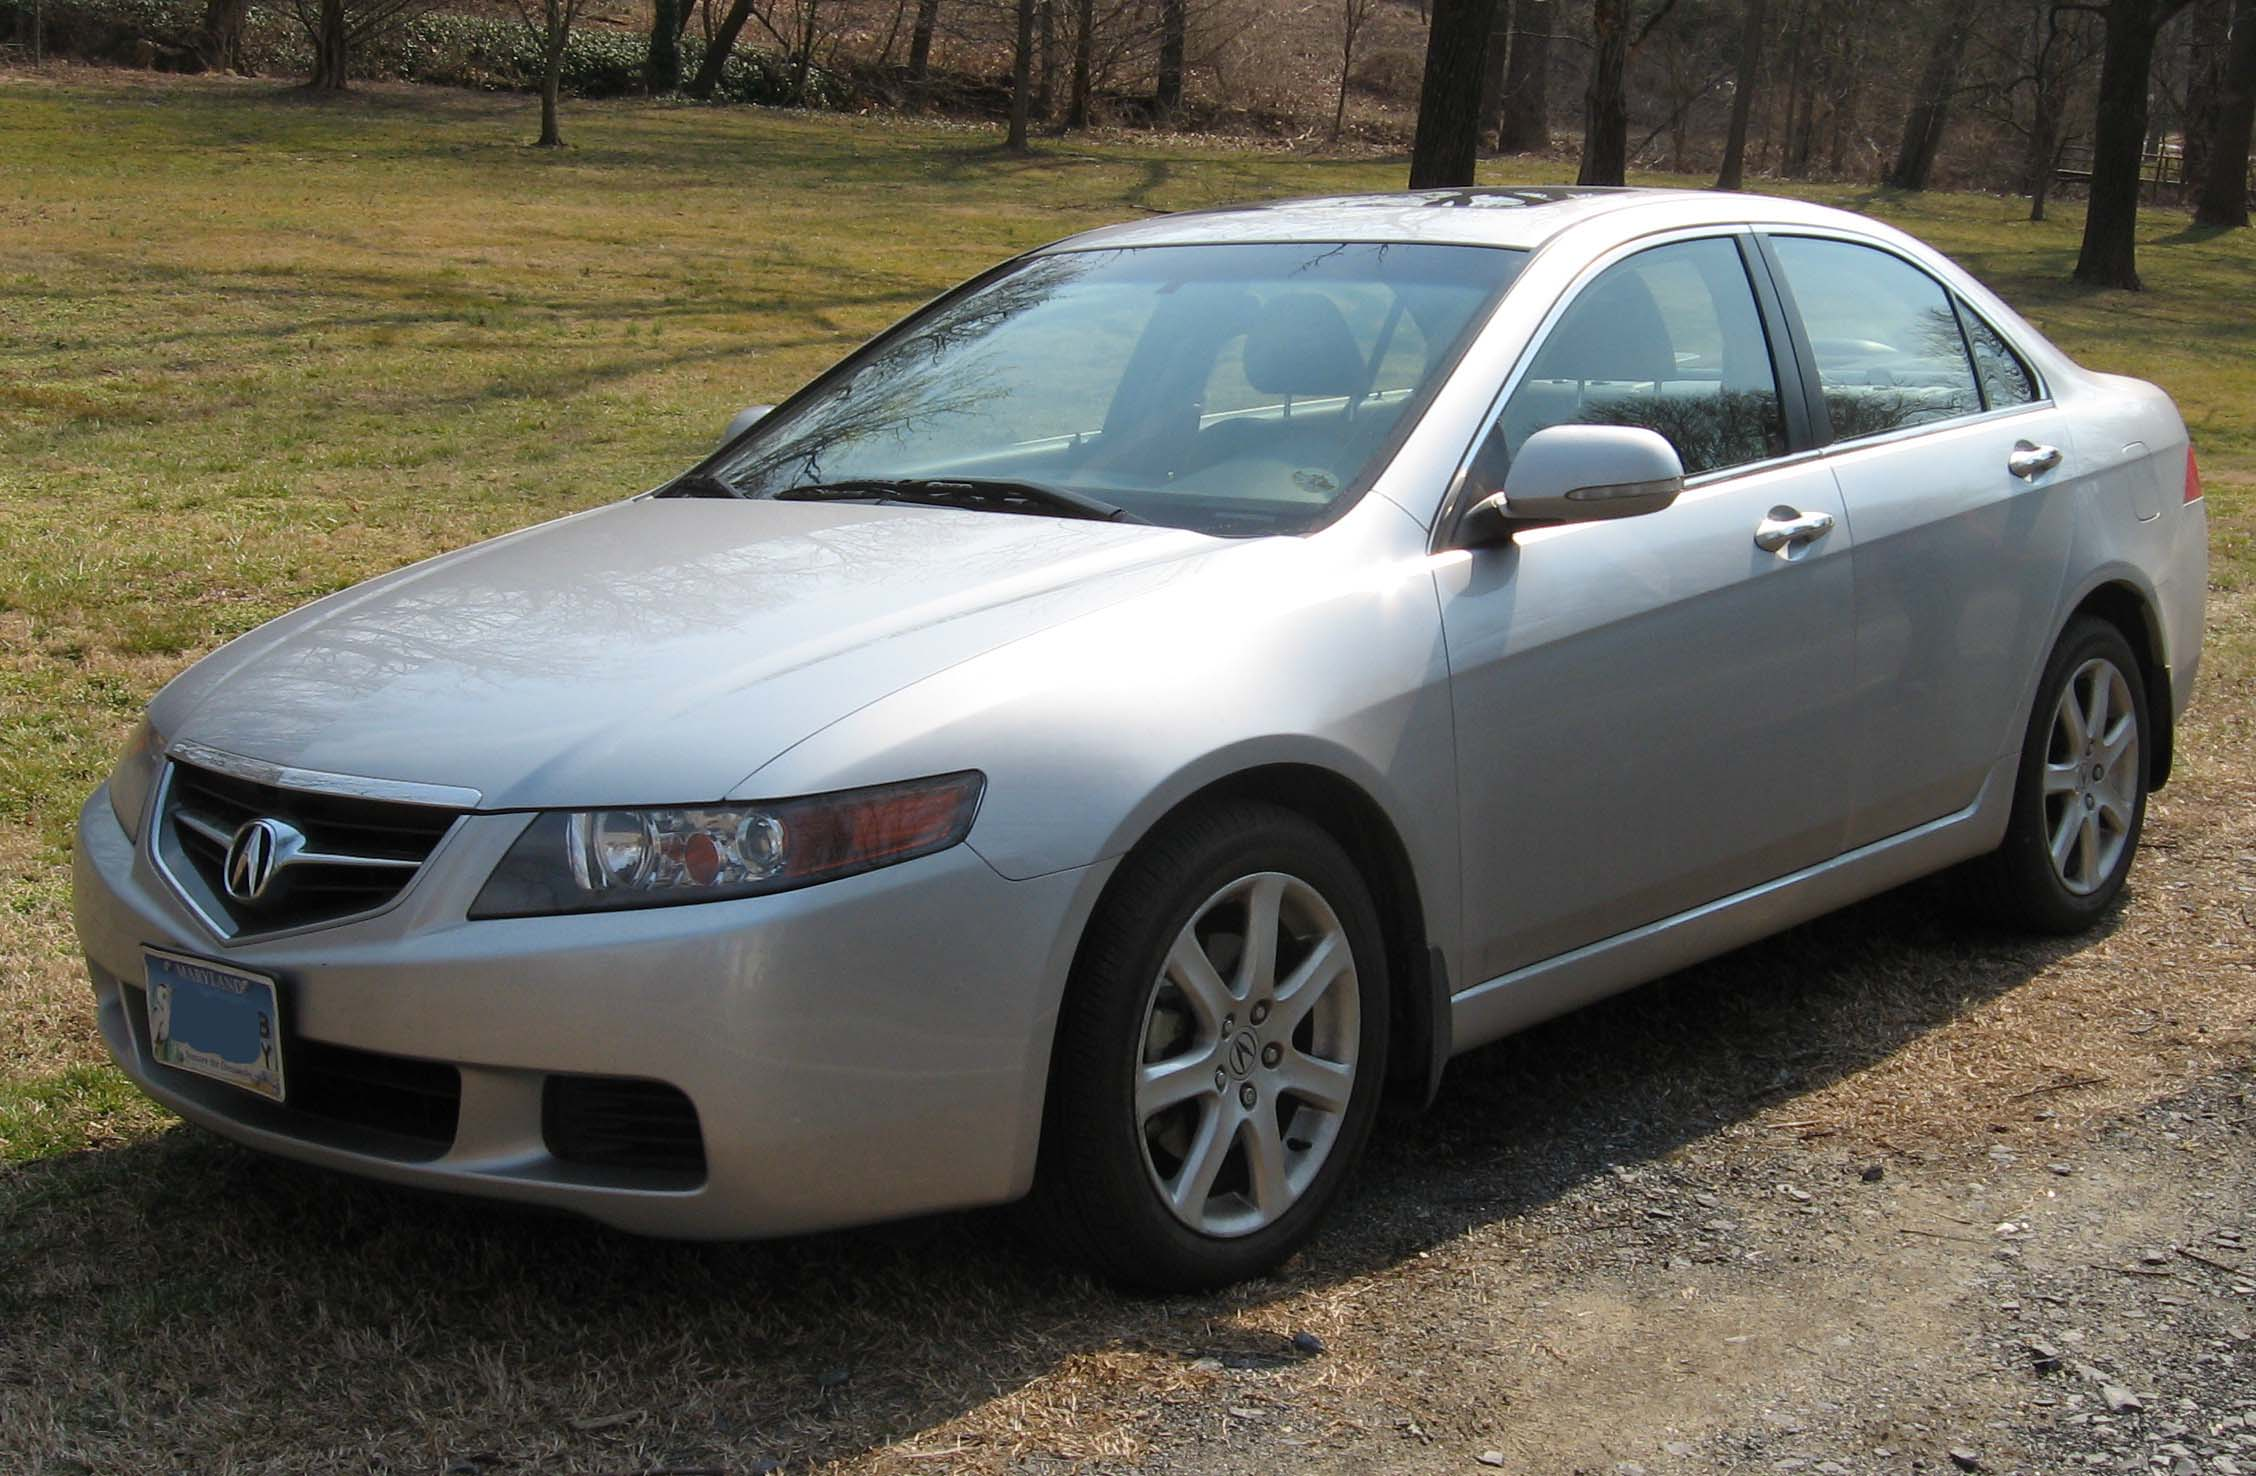 http://bestcarmag.com/sites/default/files/44736892004-2005_Acura_TSX.jpg